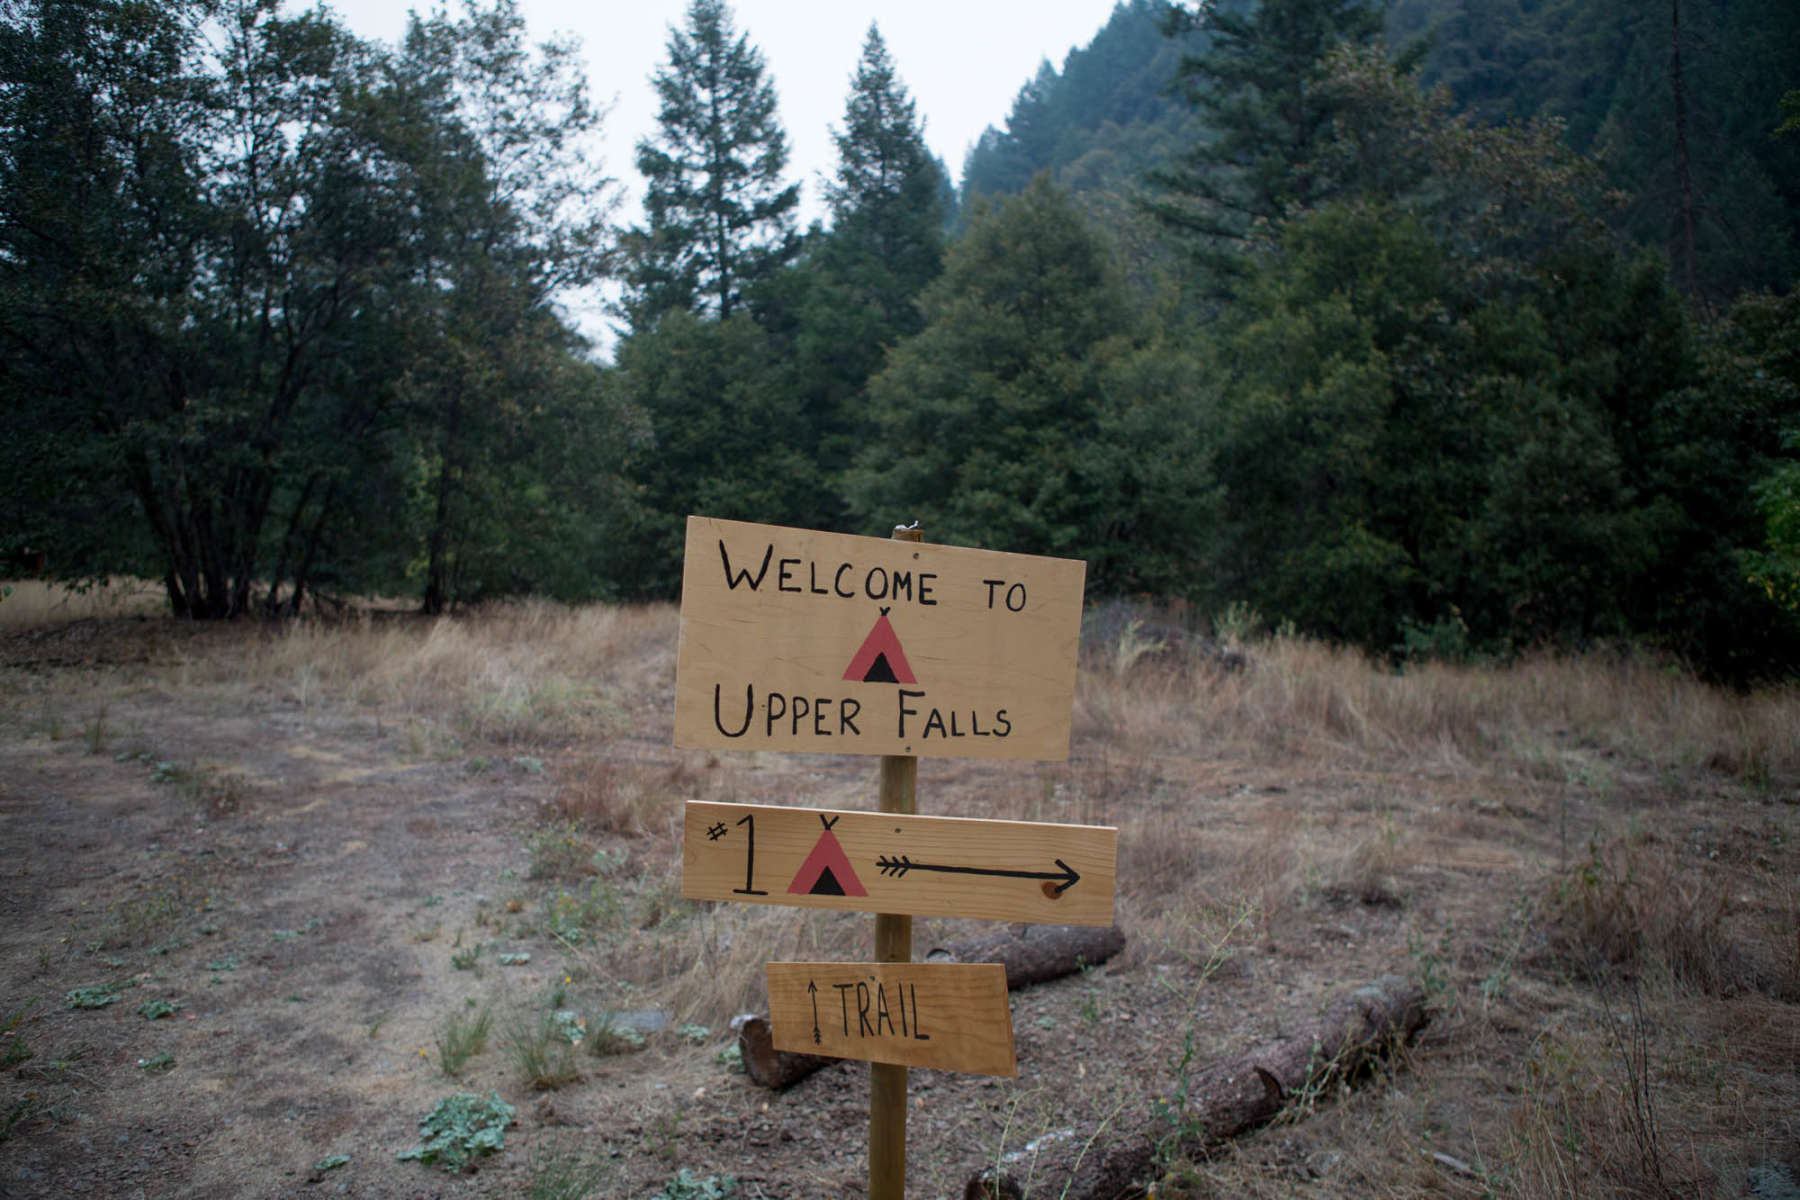 upper falls girls 2015-1-28 girls track and field boys track and  amherst woman falls to death while hiking in  goldman died after she fell 15 feet into an area known as upper falls.